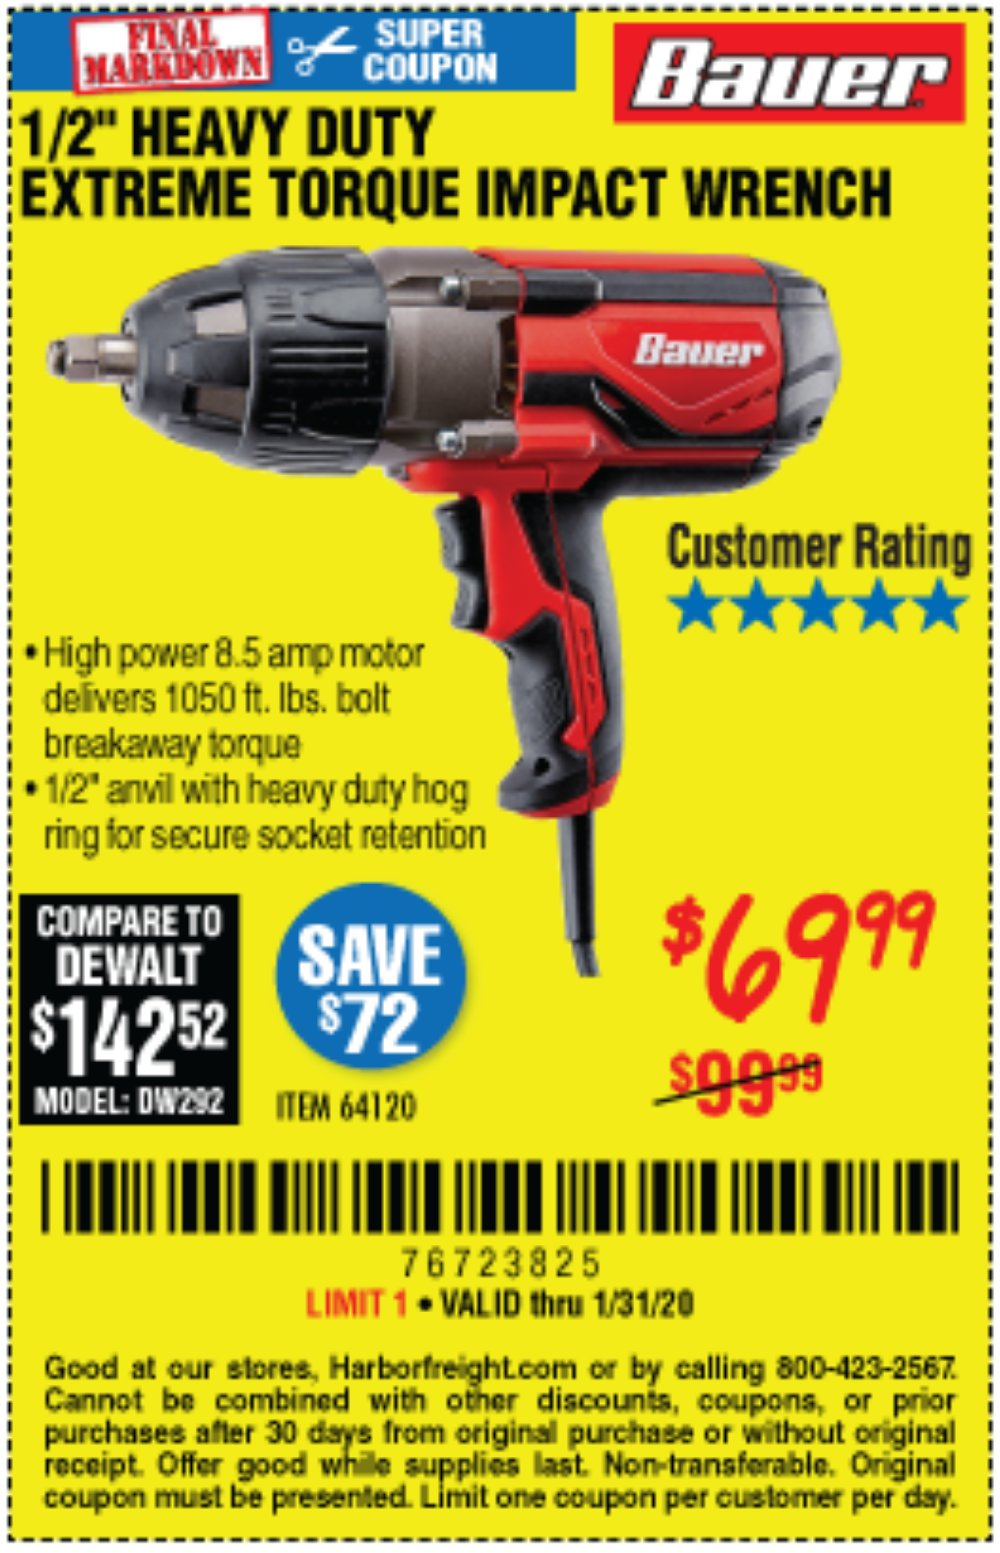 Harbor Freight Coupon, HF Coupons - Bauer 1/2